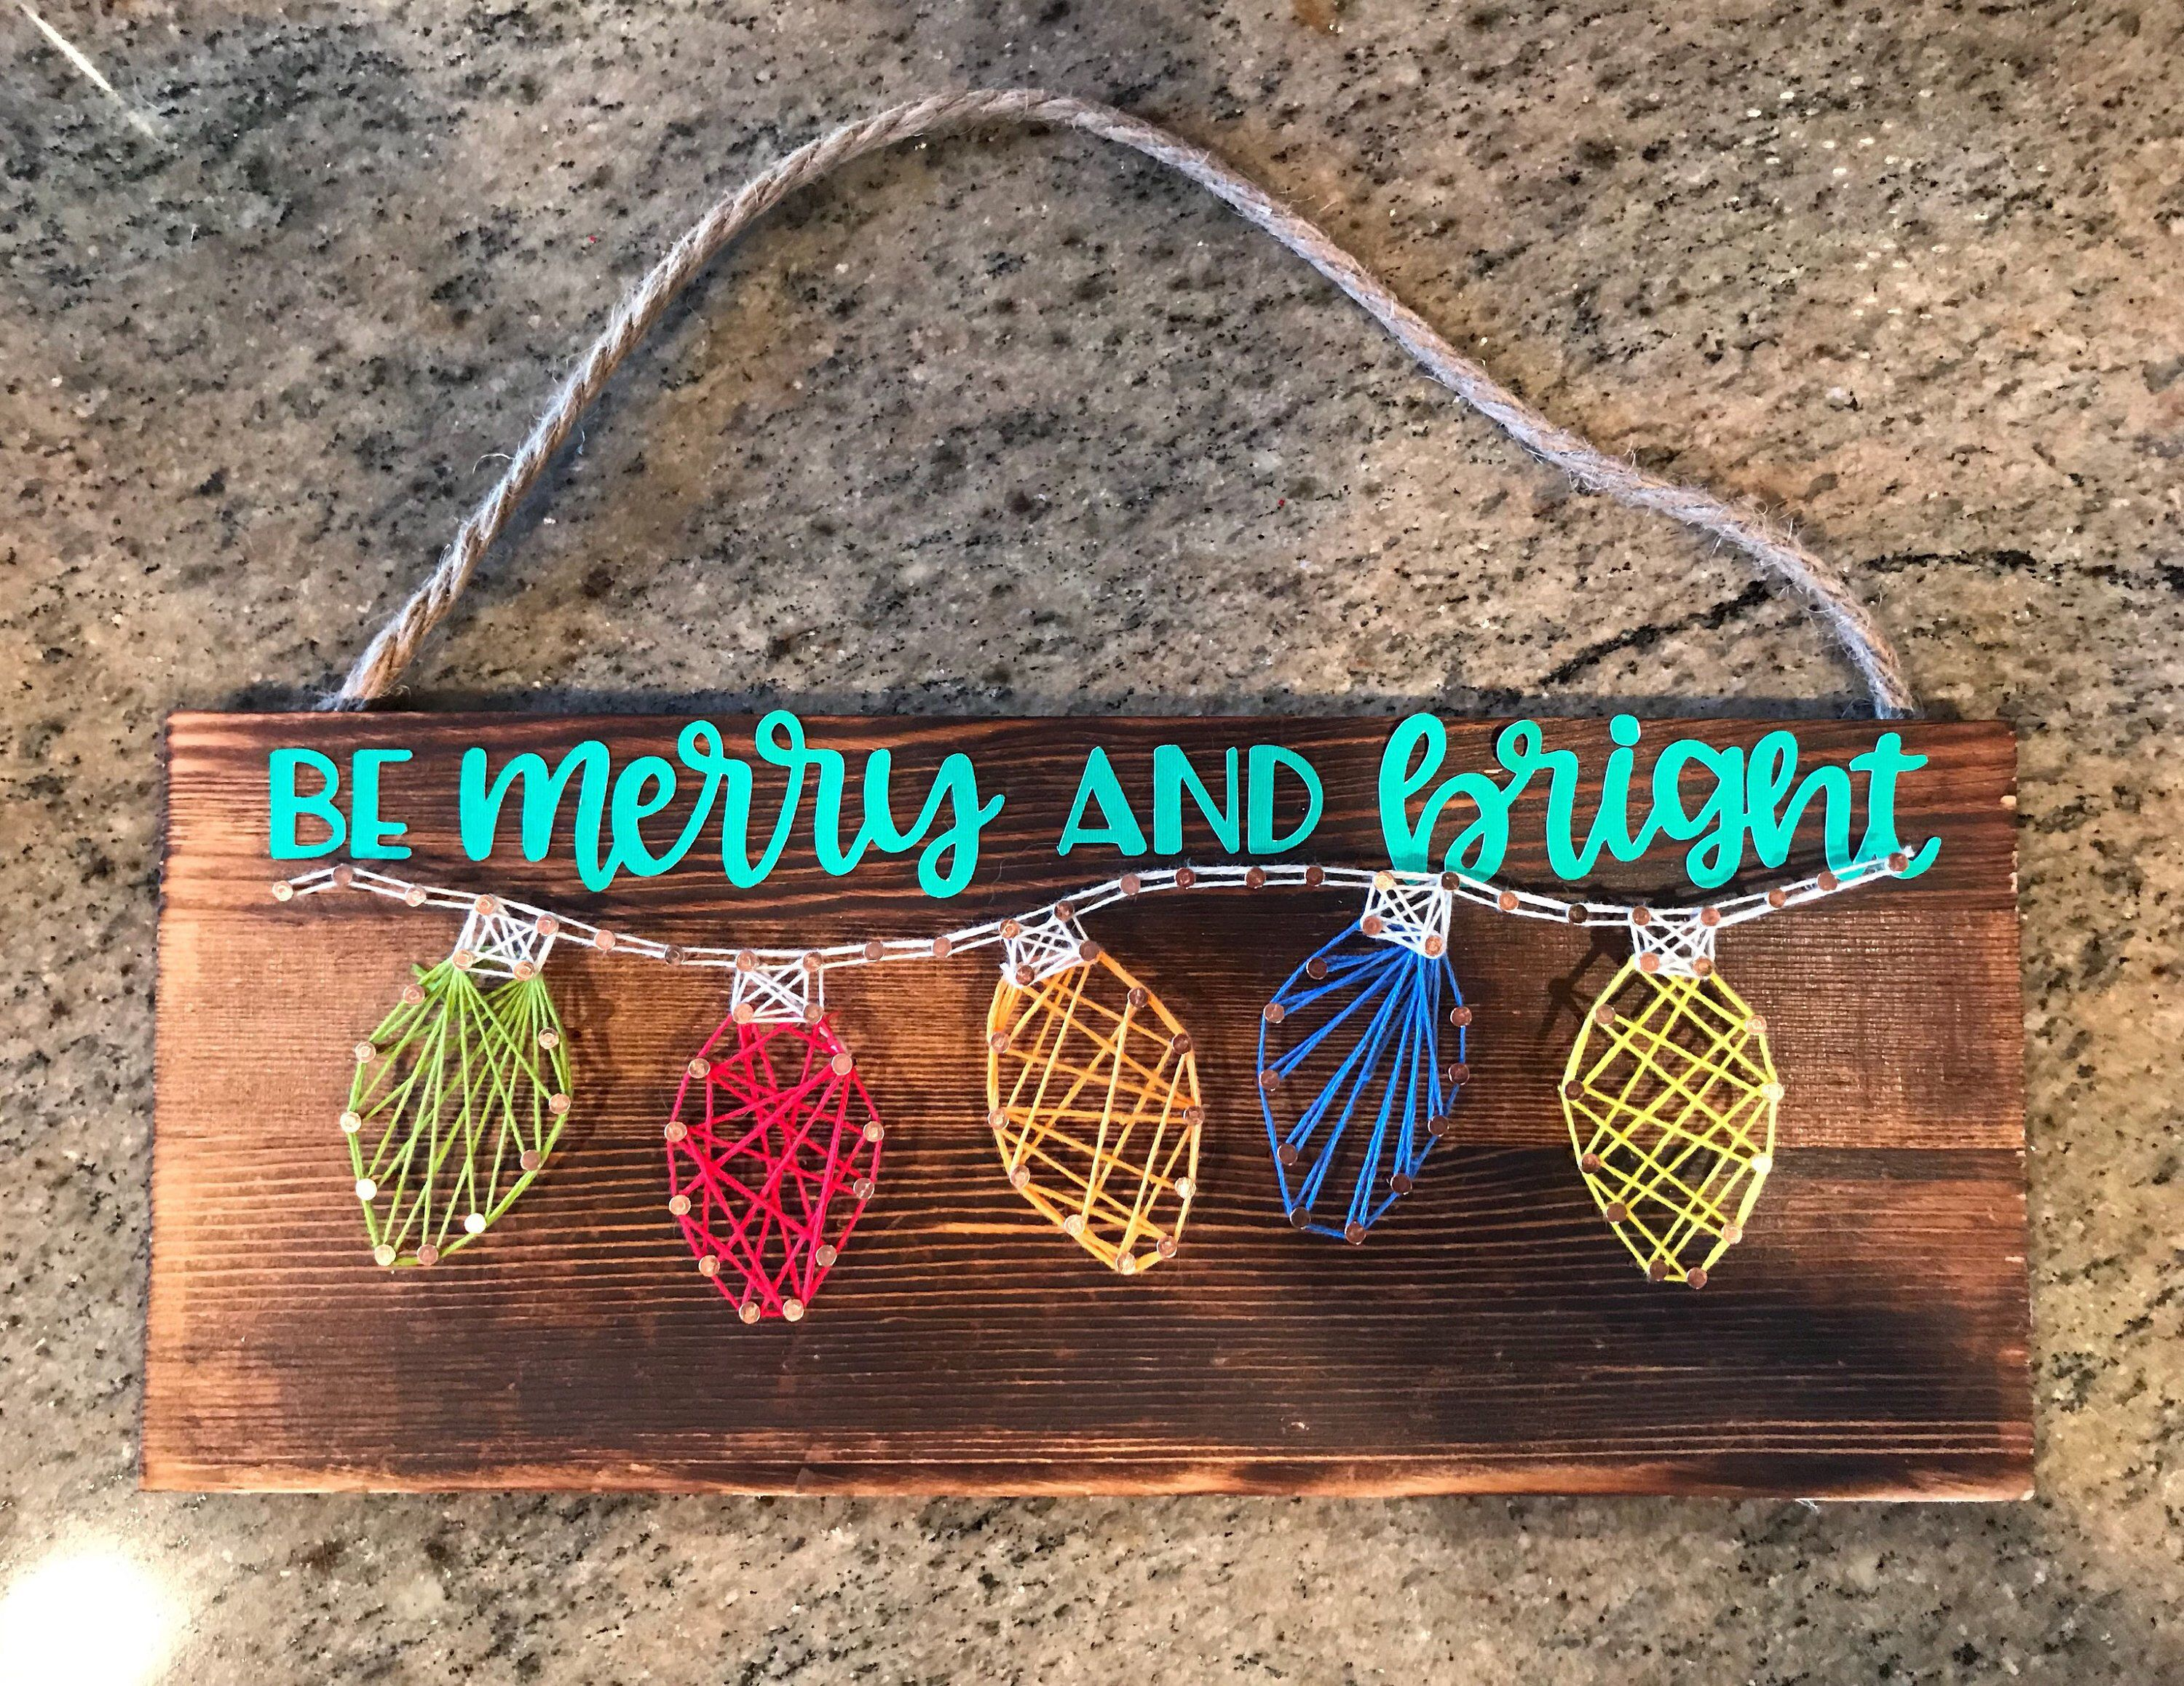 String Art Kit * Christmas Light String Art * Holiday Craft Kit * be Merry and Bright * Perfect Gift for Teens Adults #stringart